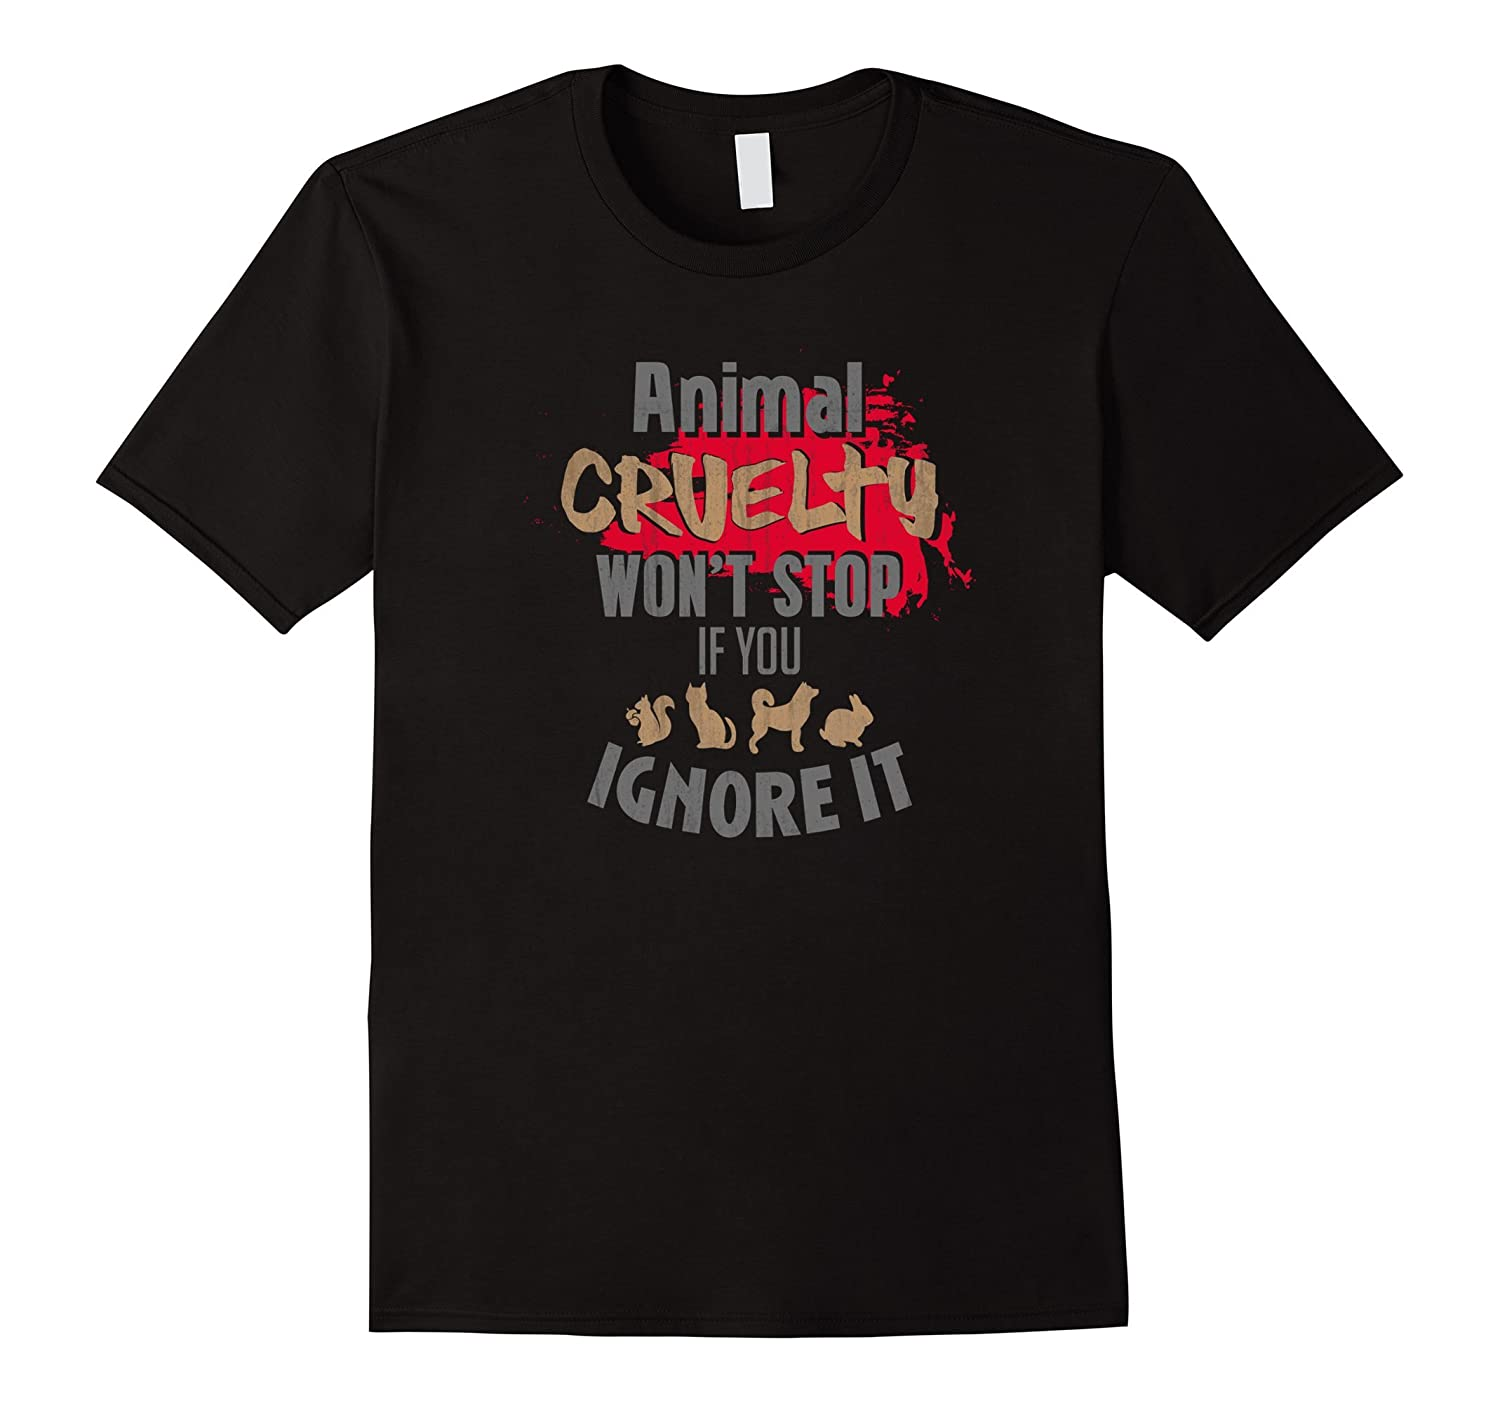 Animal Cruelty Wont Stop If You Ignore it Awareness T-Shirt-TJ